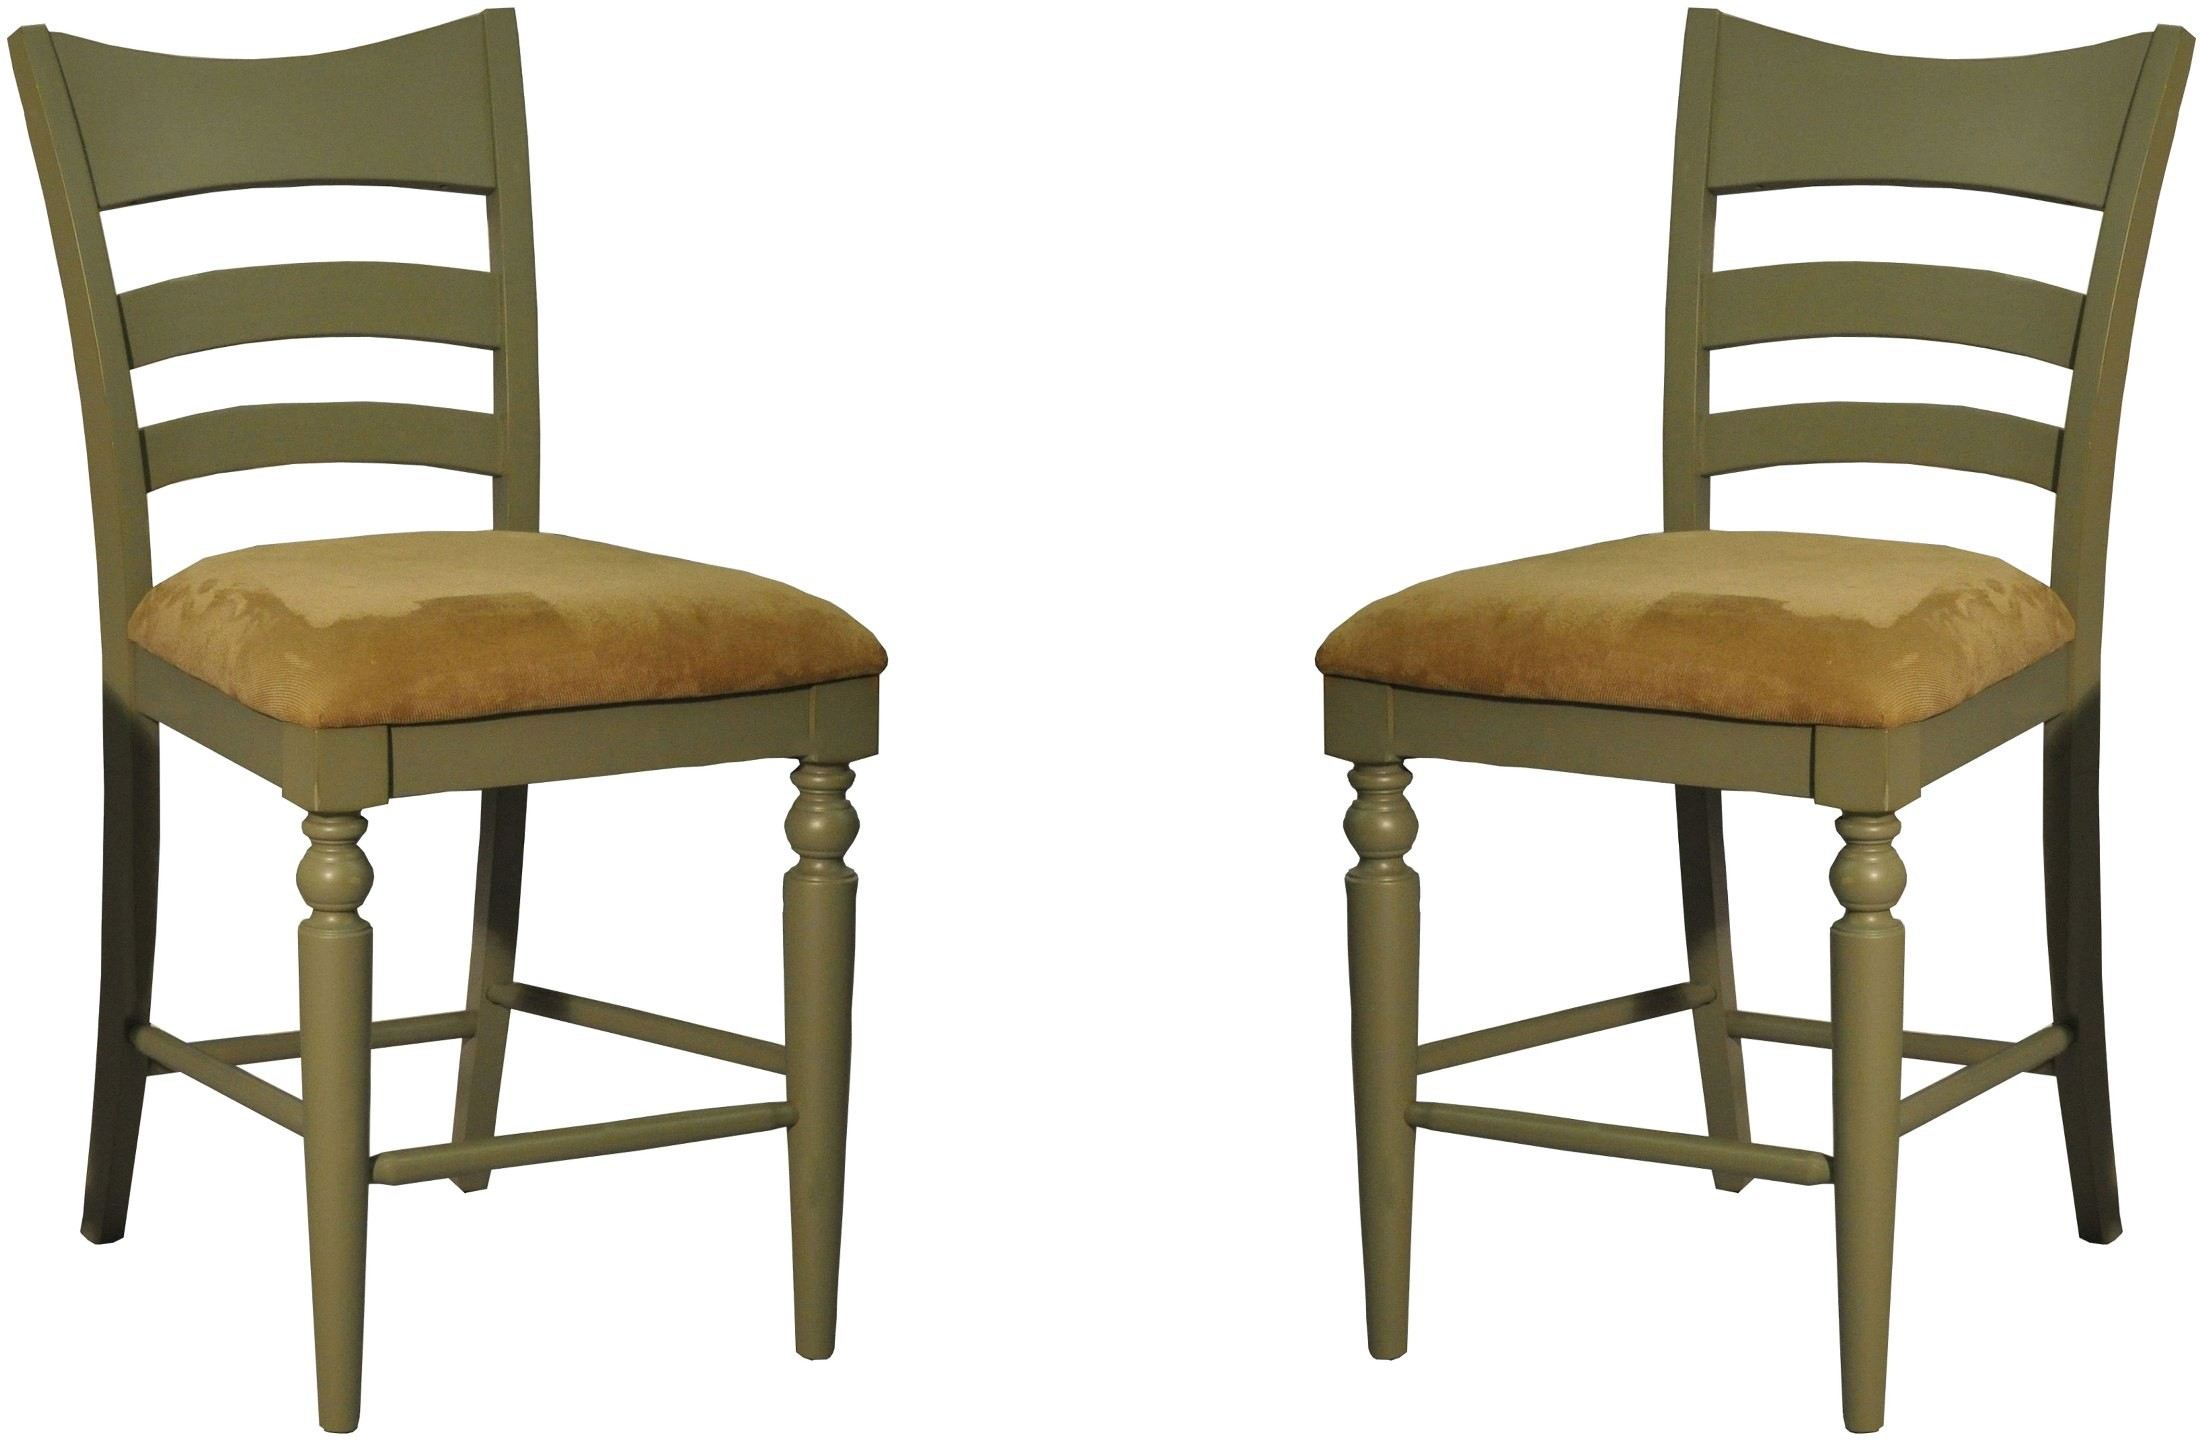 Green Counter Stool Set of 2 1866 12 BS ECI Furniture